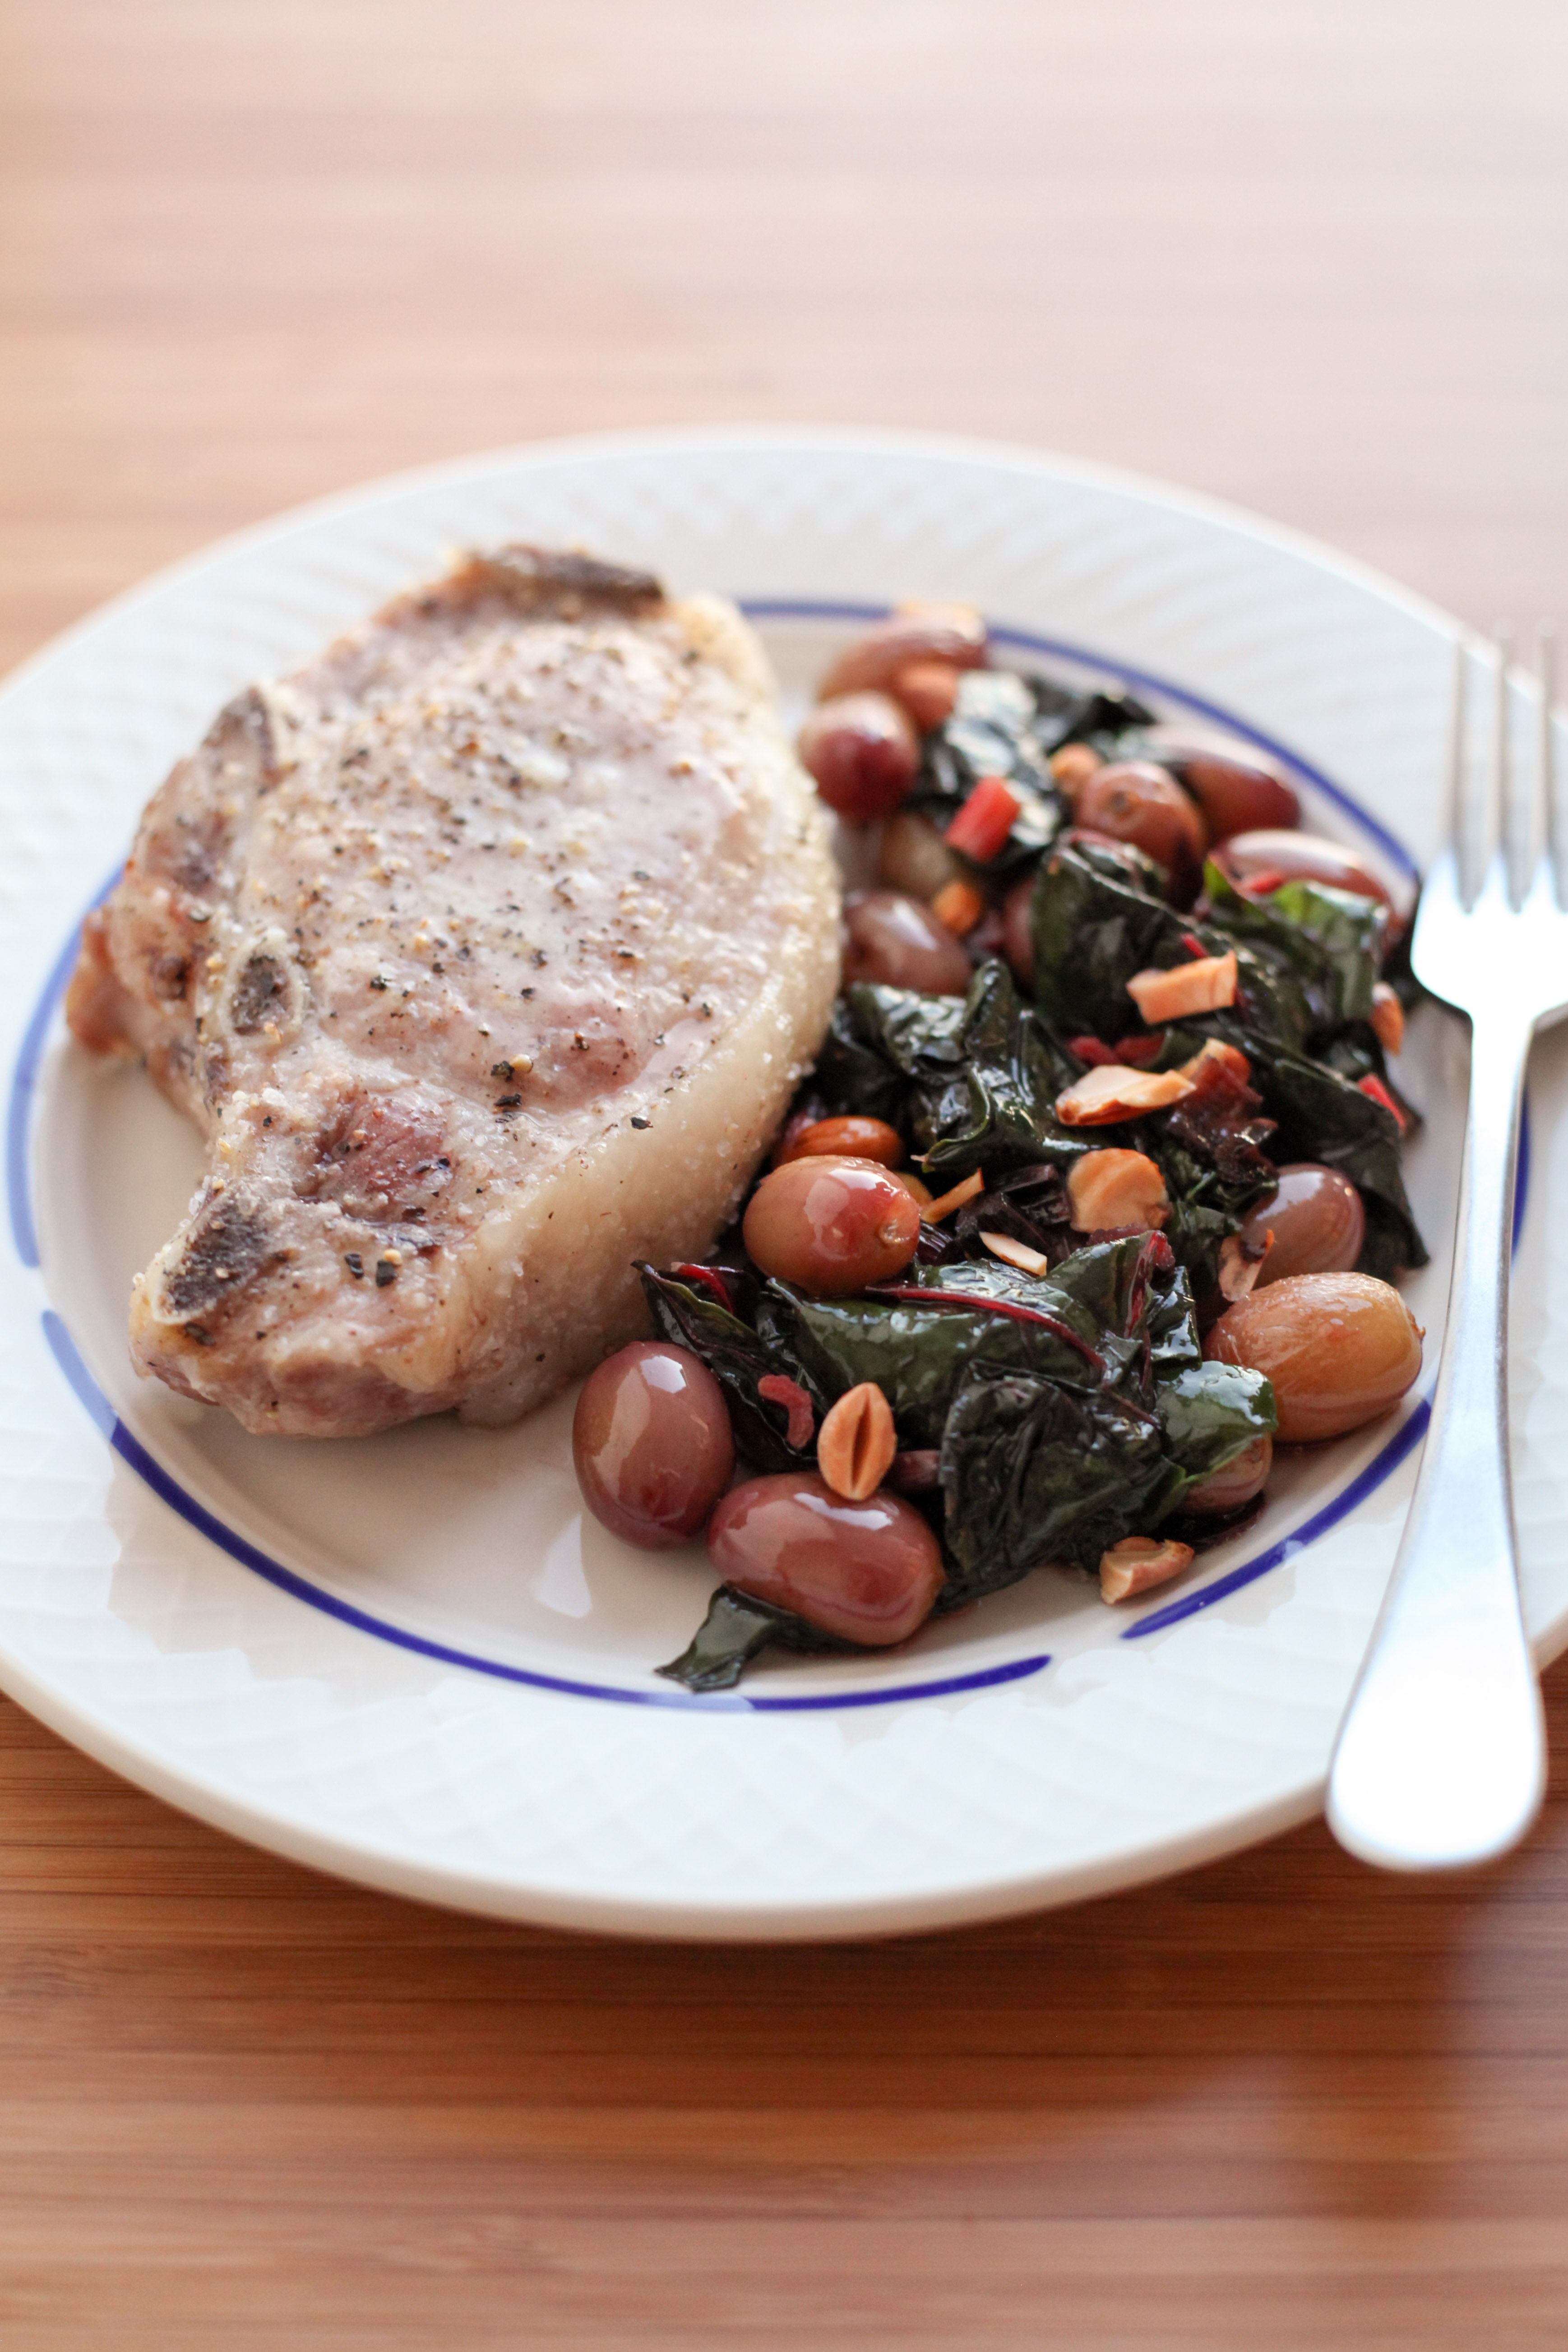 One-Pan Pork Chops With Grapes and Swiss Chard | amodestfeast.com | @amodestfeast